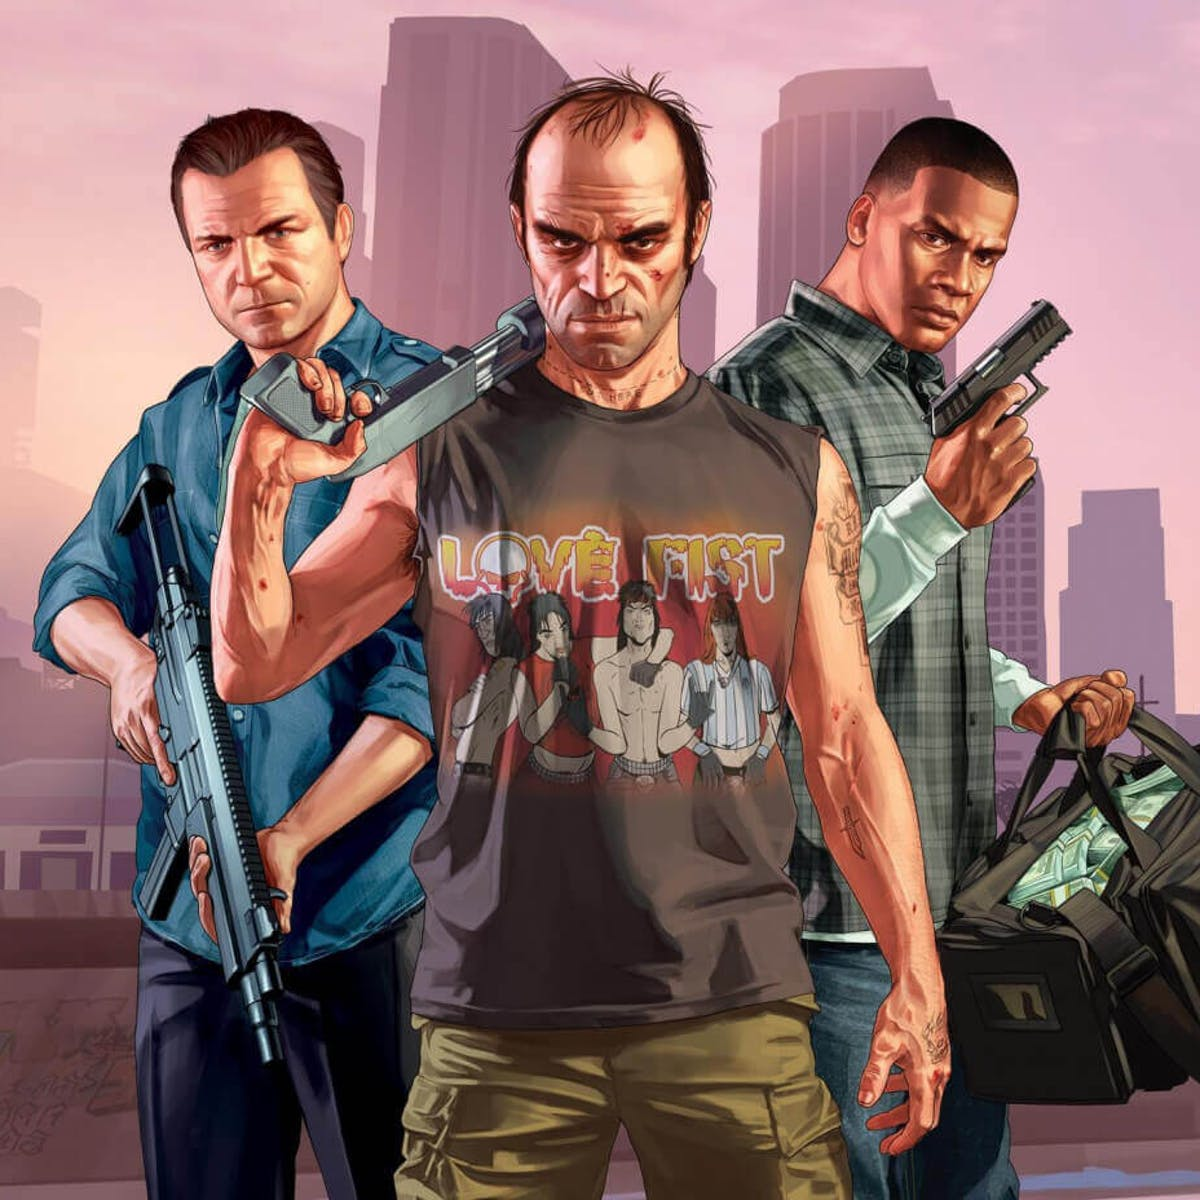 Leak claims 'GTA 6' might finally be revealed at The Game Awards